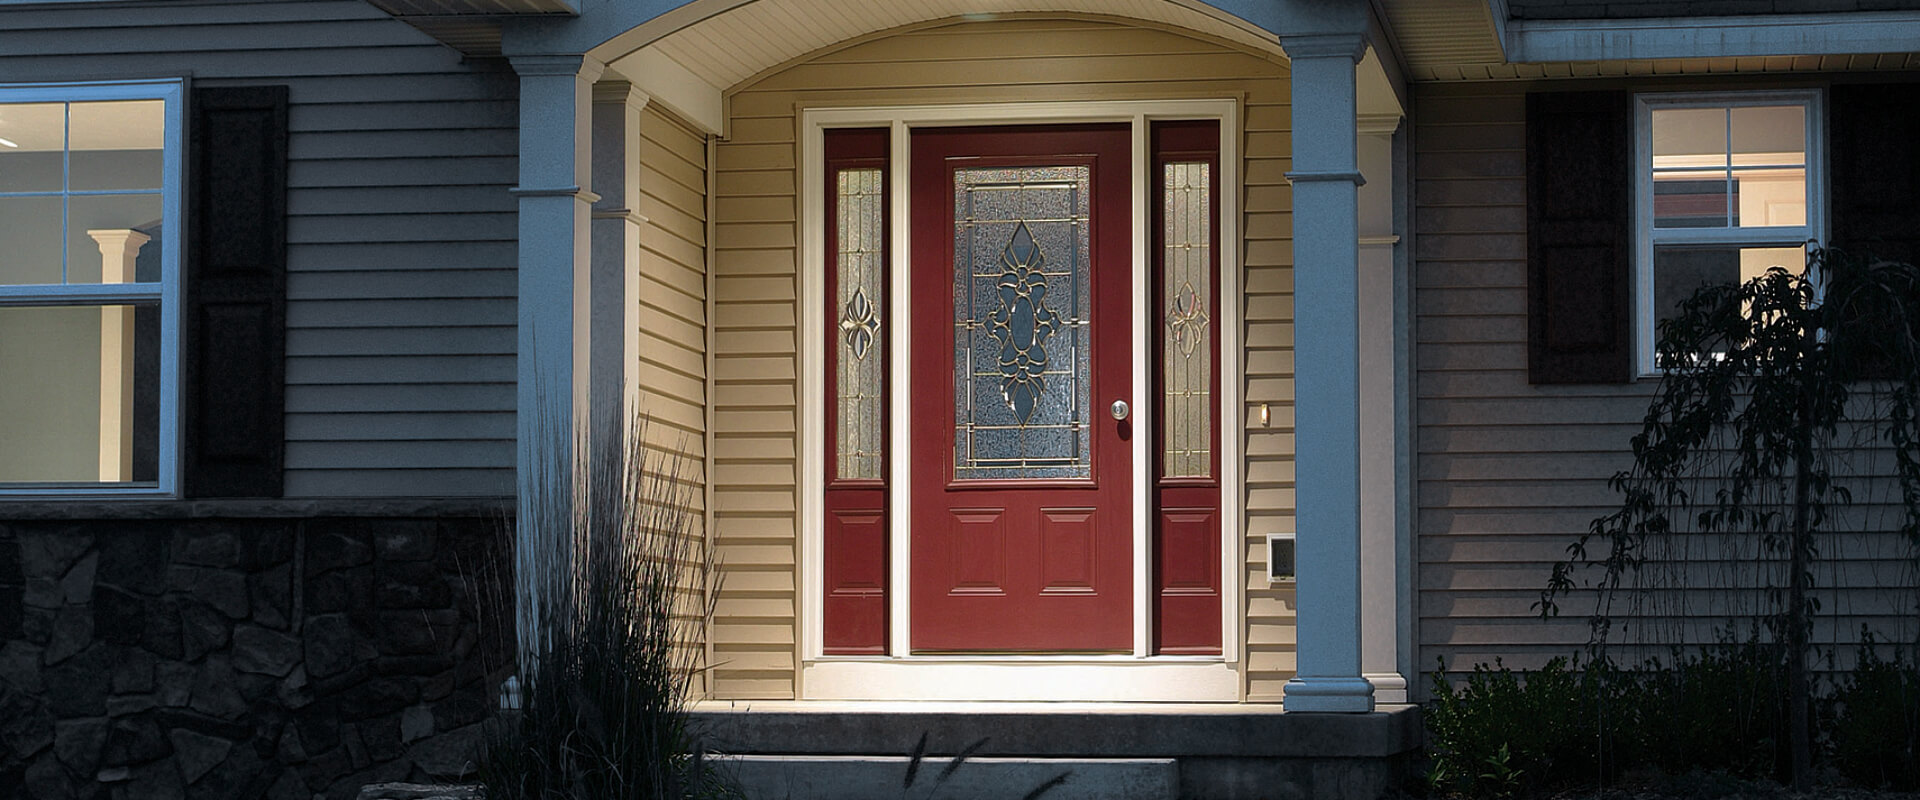 Standard Smooth fiberglass door panel 607 with Regency decorative glass.